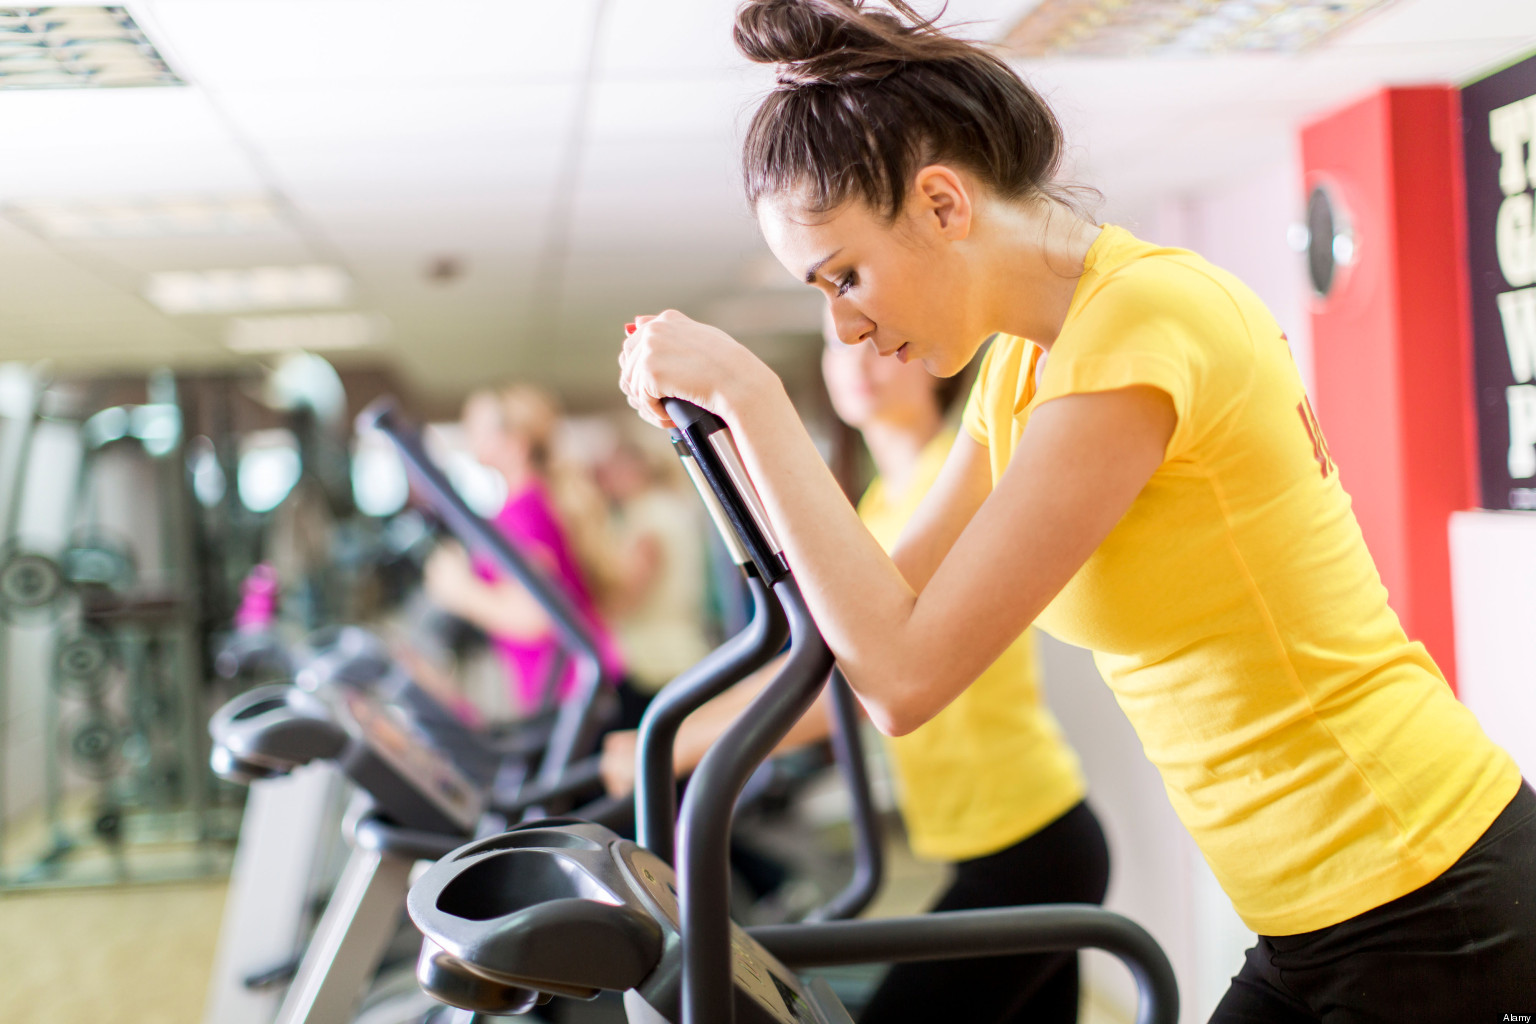 We debunk the most common gym beauty myths recommend